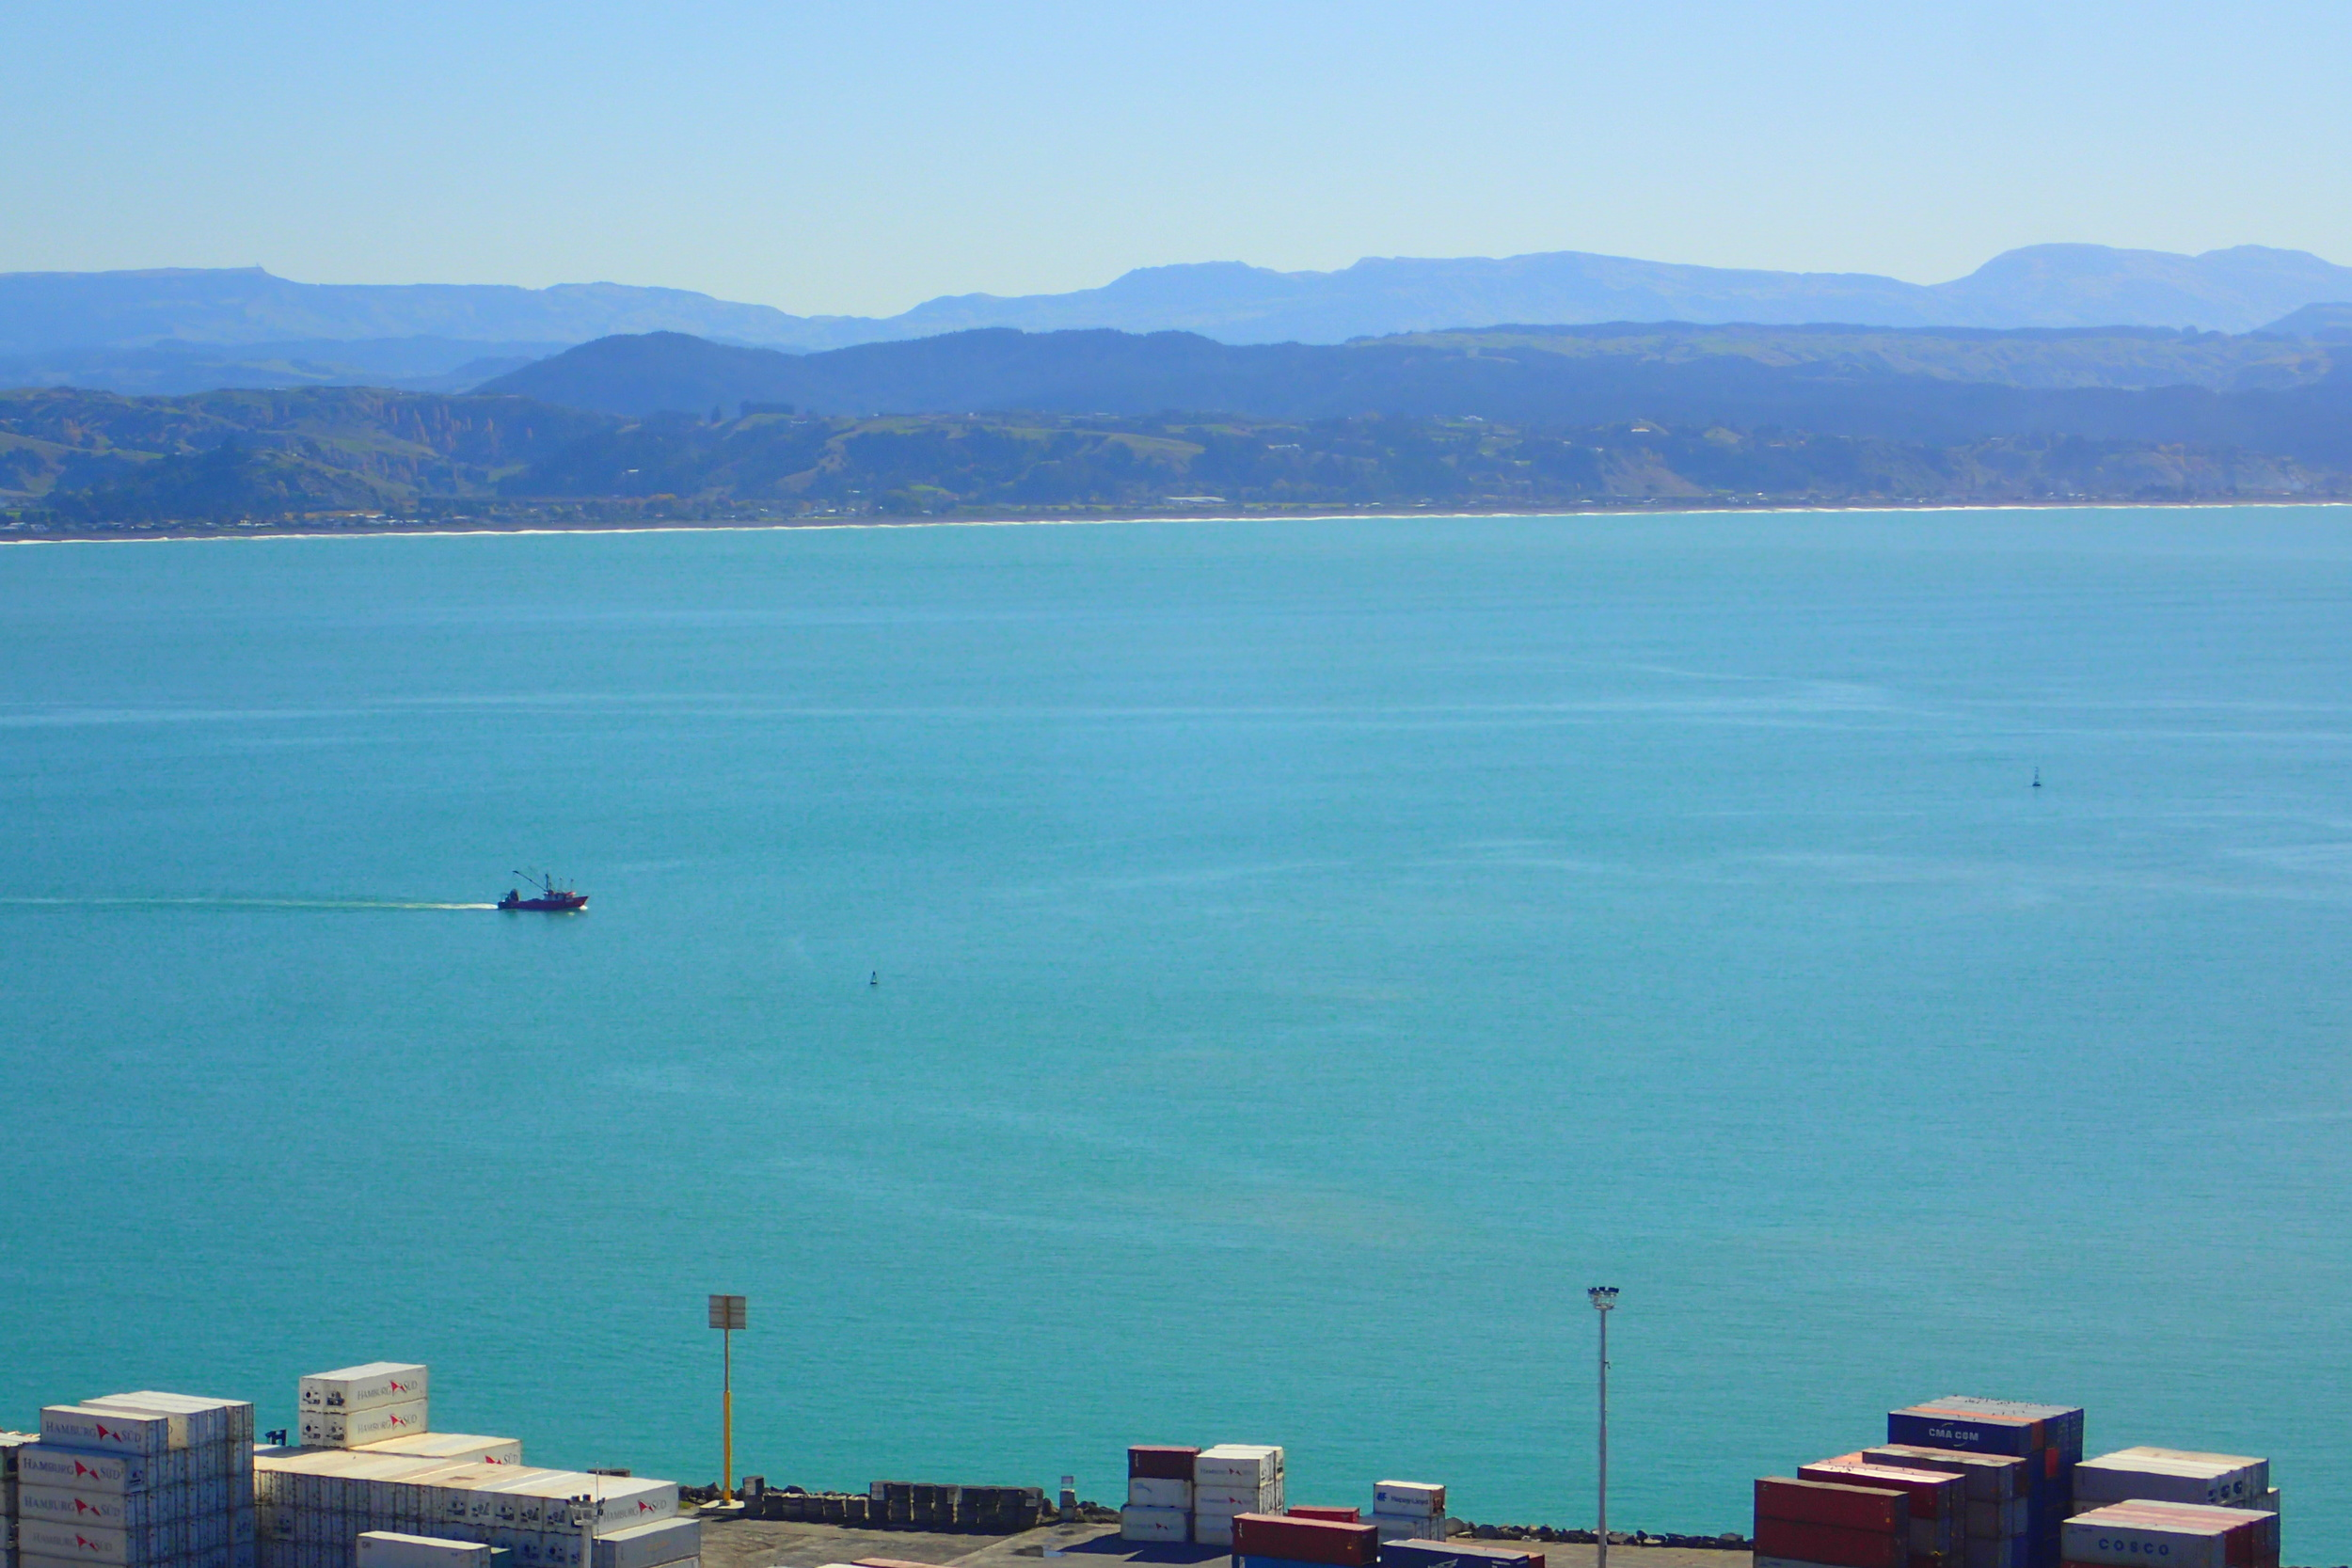 There's a thriving fishing industry from the Port of Napier